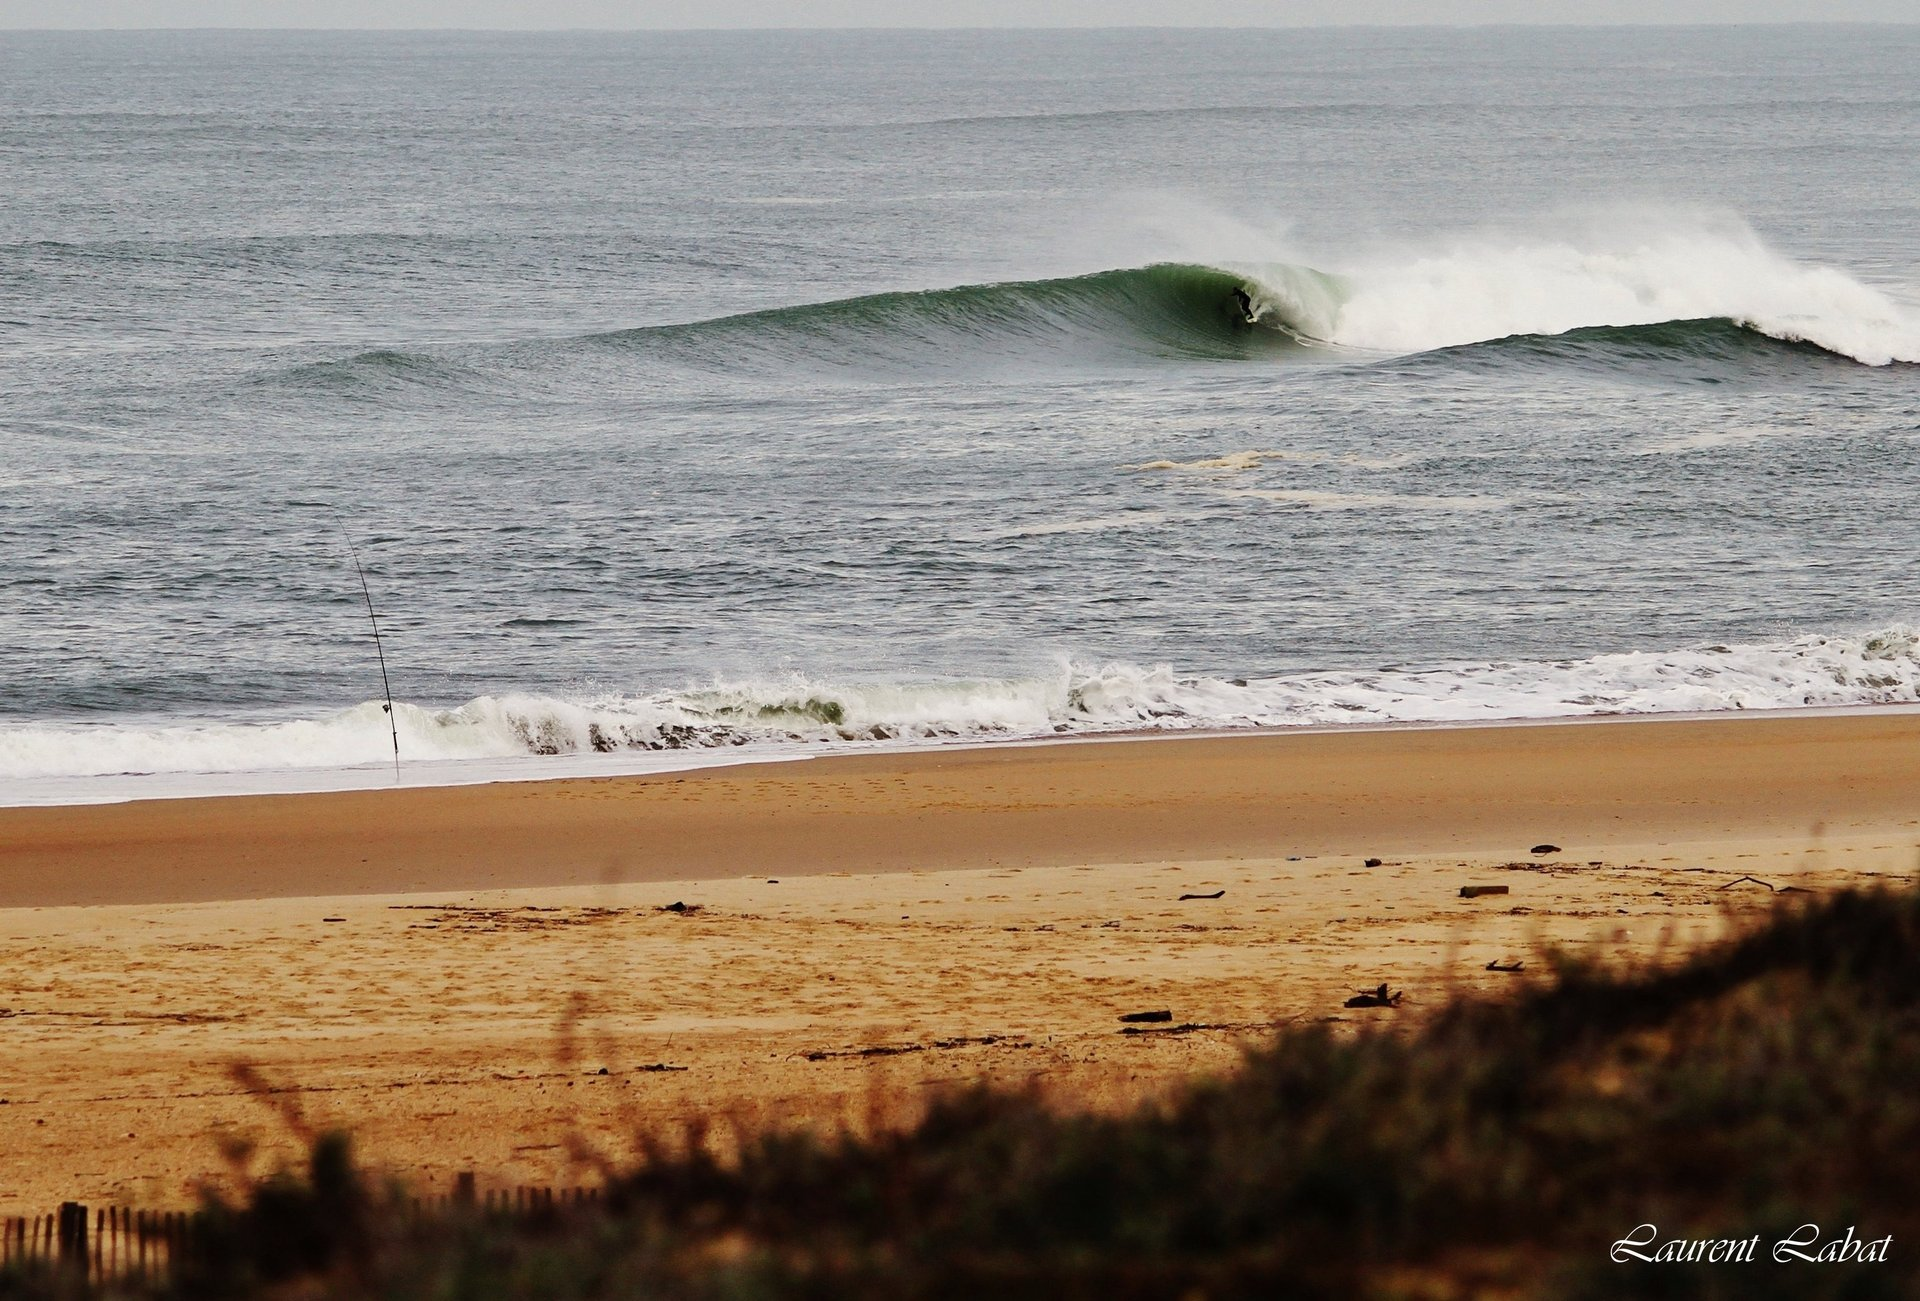 laurent labat's photo of Hossegor (La Sud)